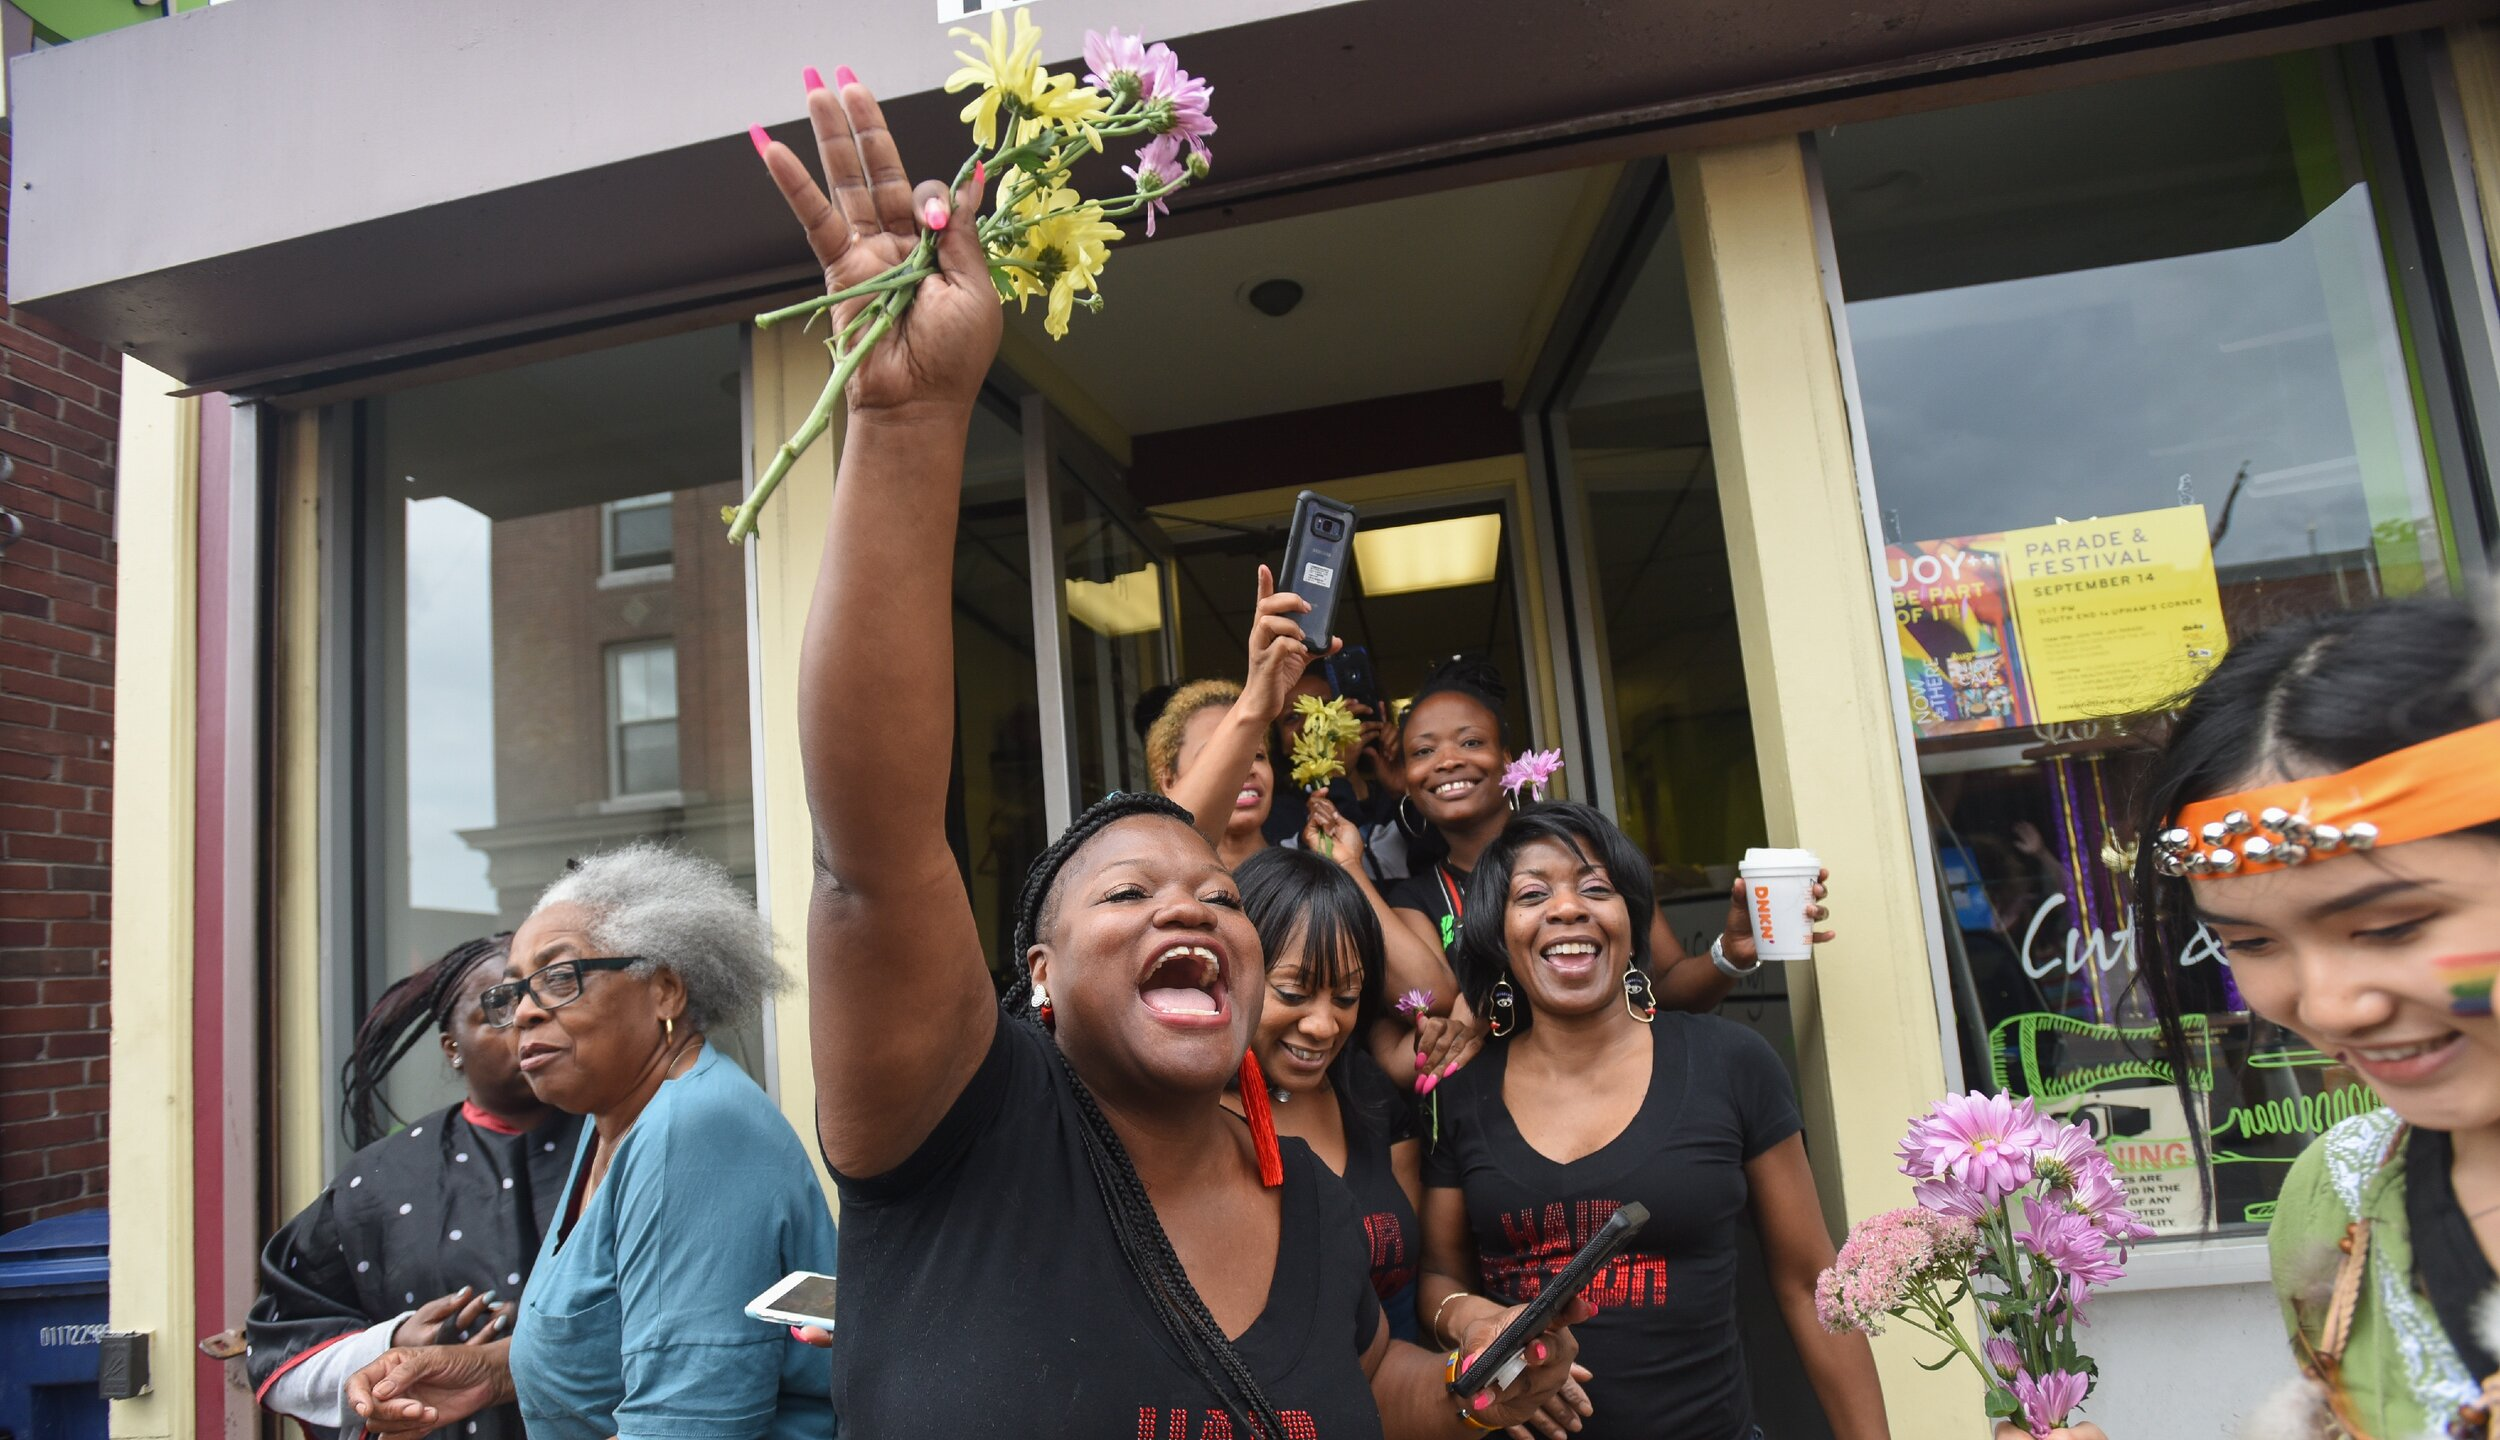 Cheering for art and joy in Dudley Square. Photo by Faith Ninivaggi